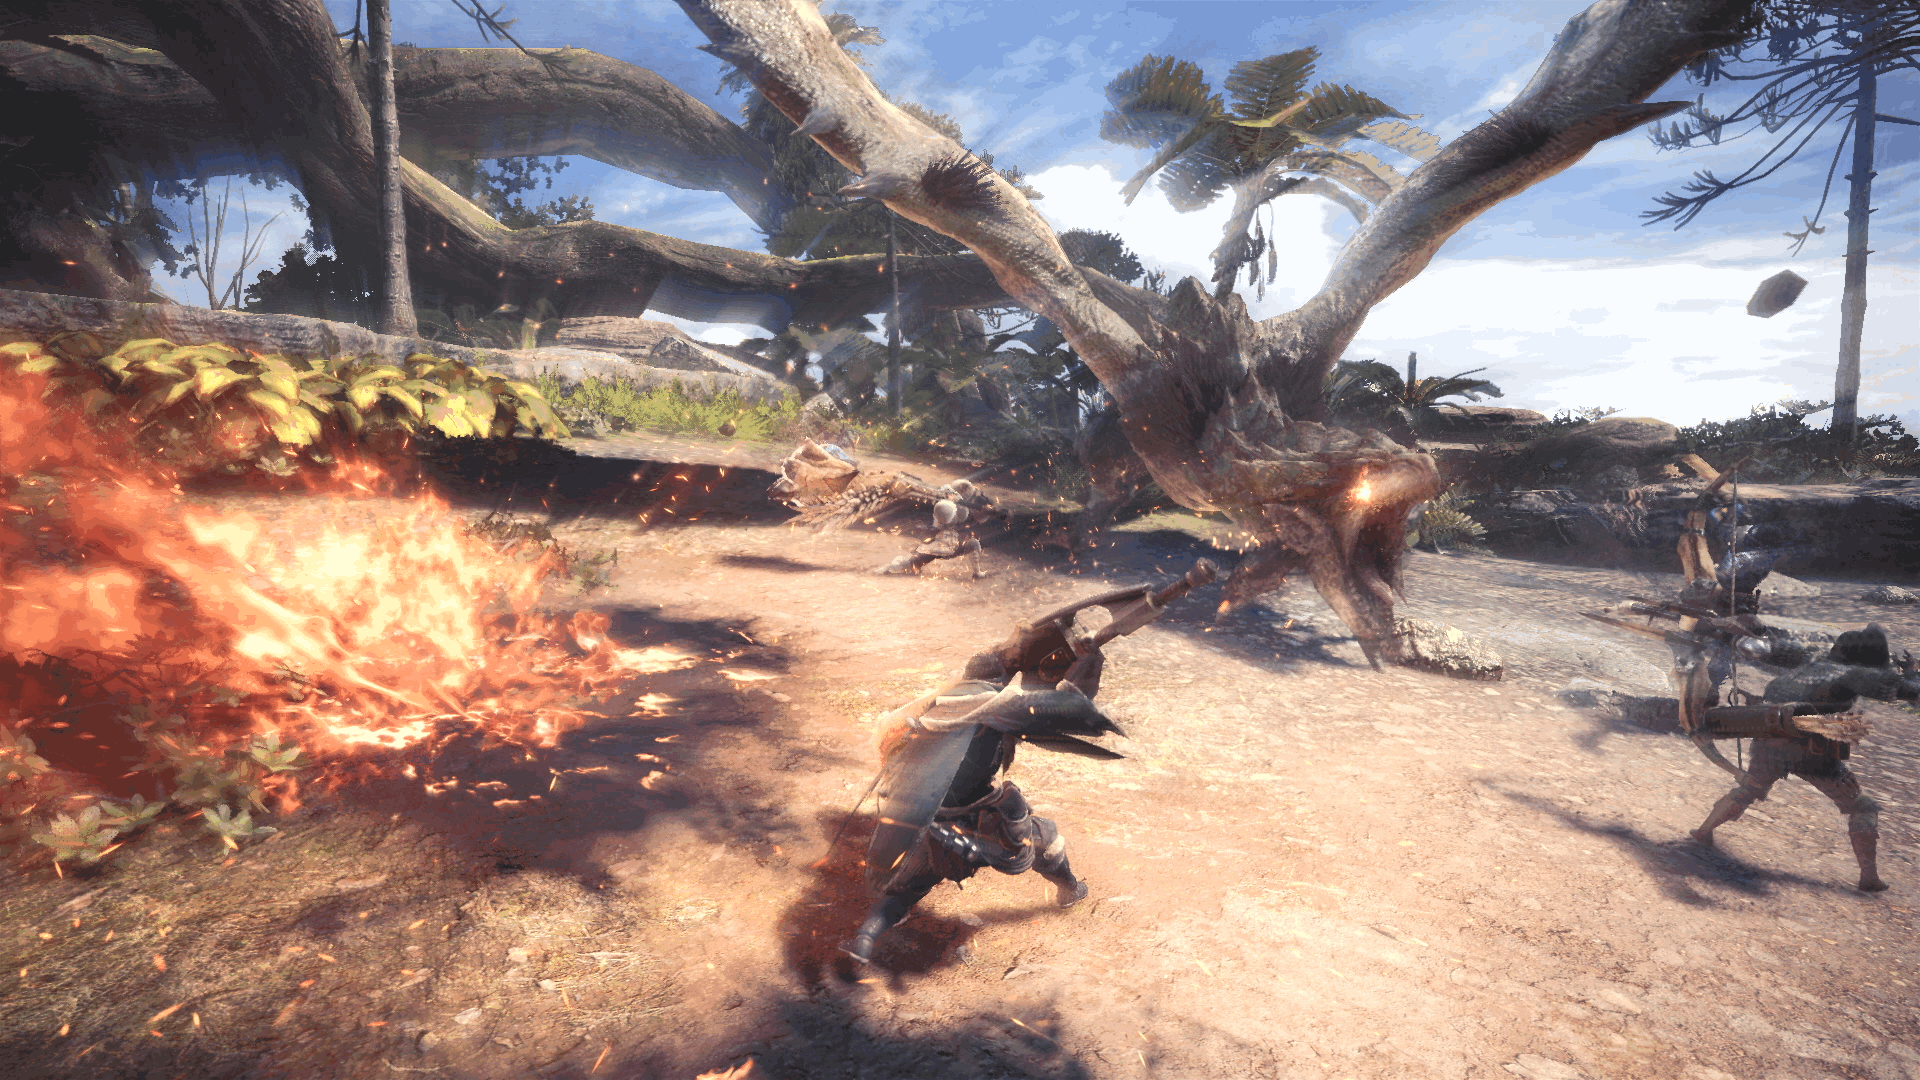 Monster Hunter World Weapons: Which Weapon Should You Choose? All 14 Types Evaluated